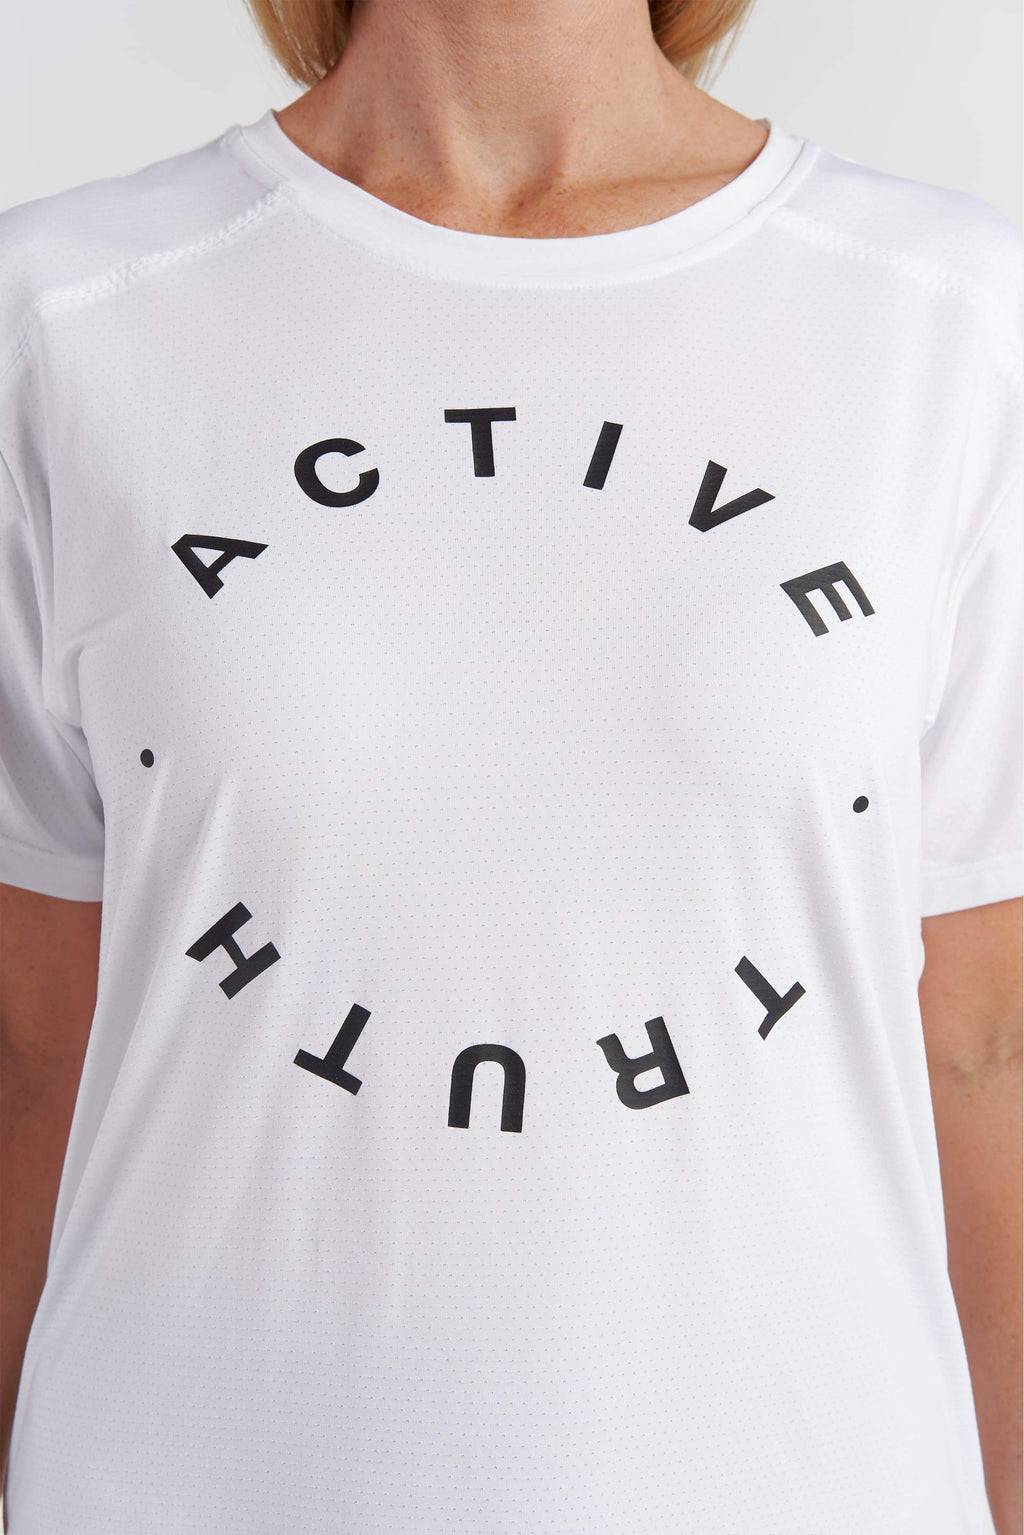 Performance T-Shirt - White Circle from Active Truth USA